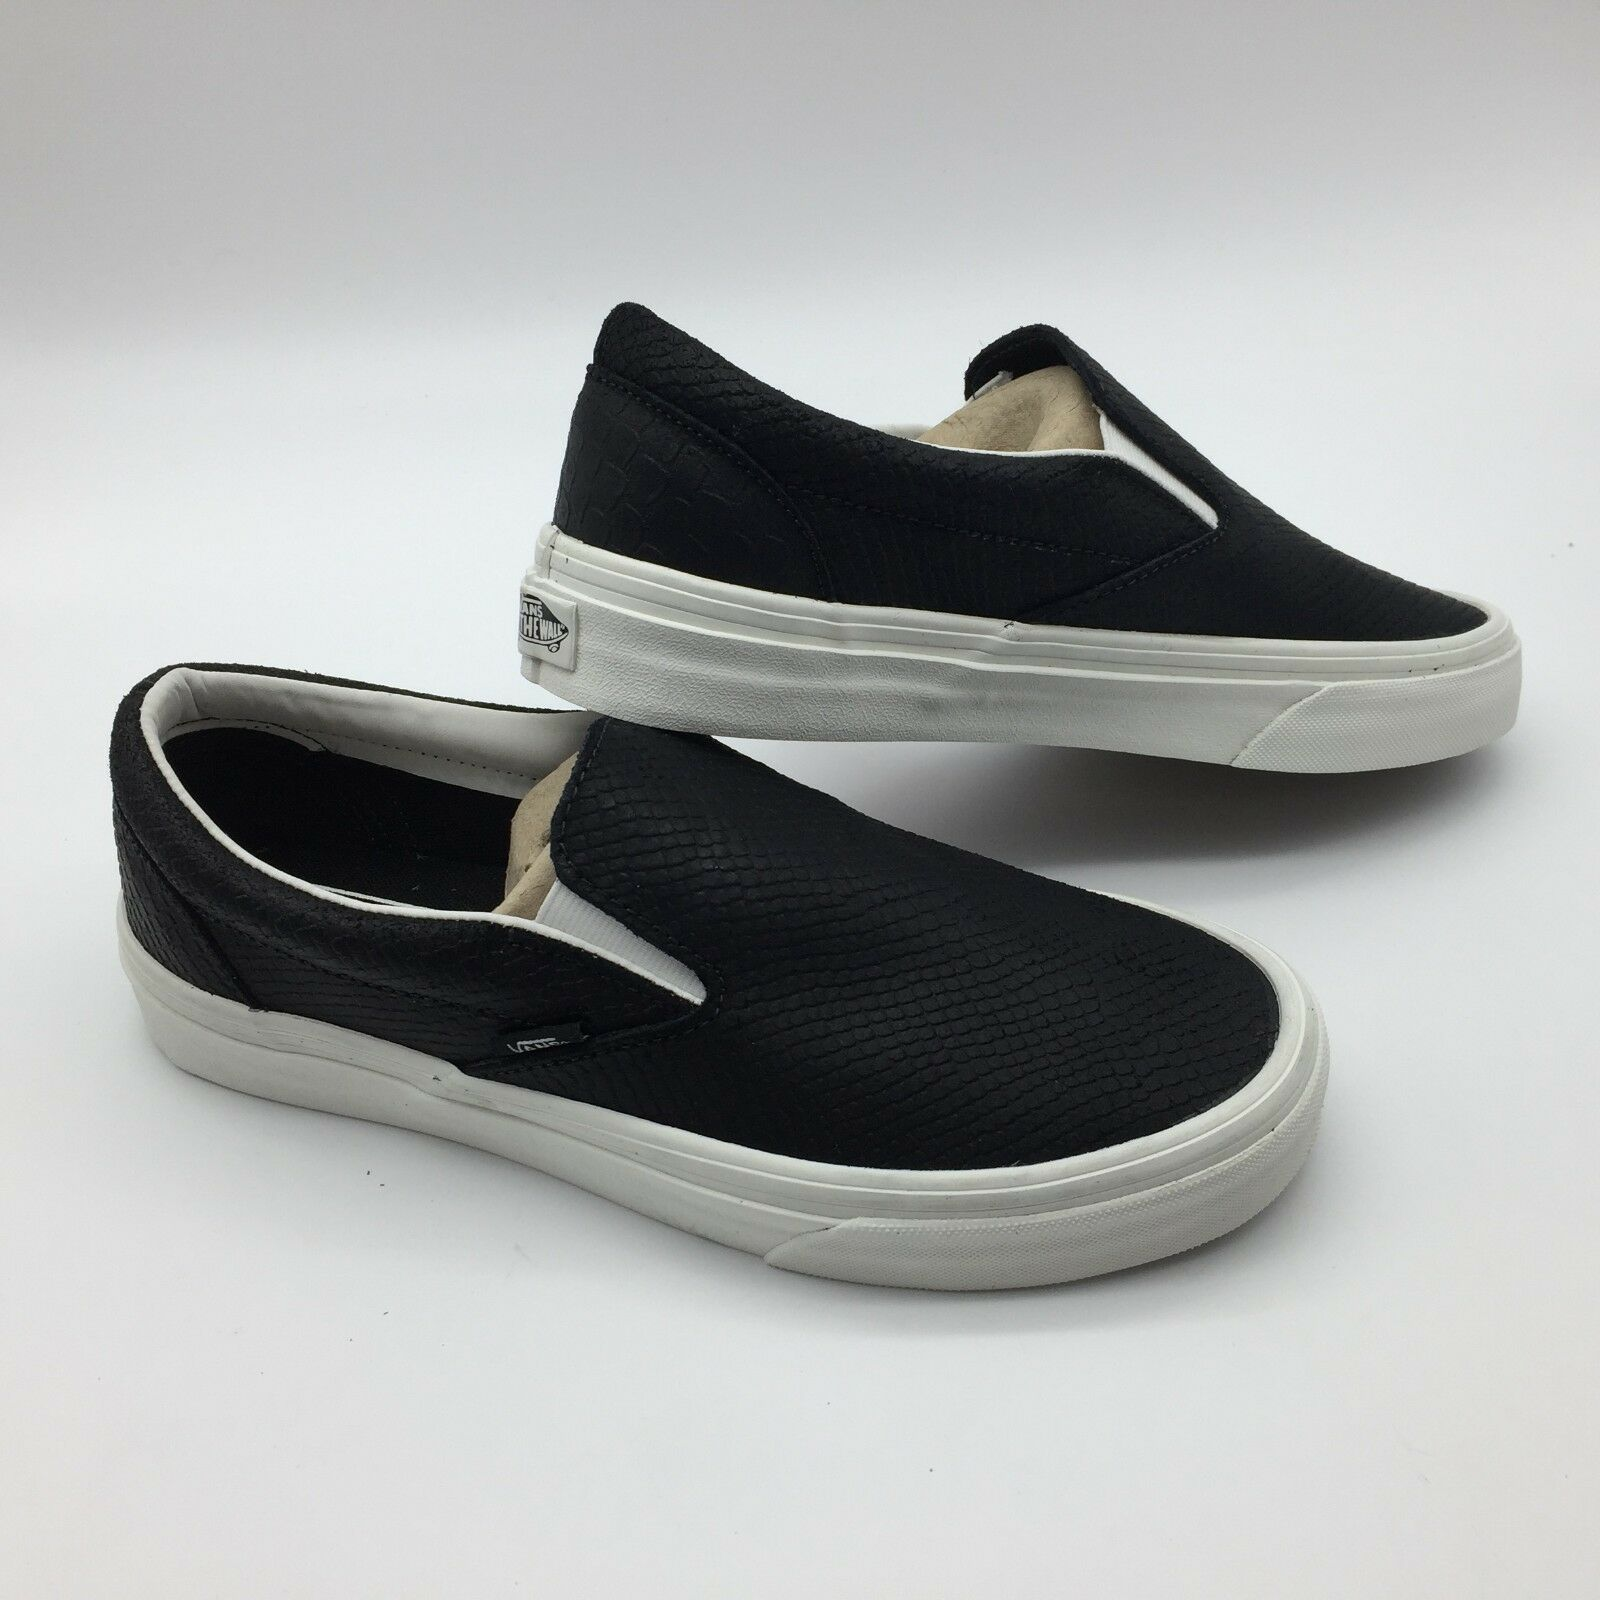 Vans Para hombres Zapatos Classic Classic Classic Slip-on -- (snake) Negro/Blanc 797ff6